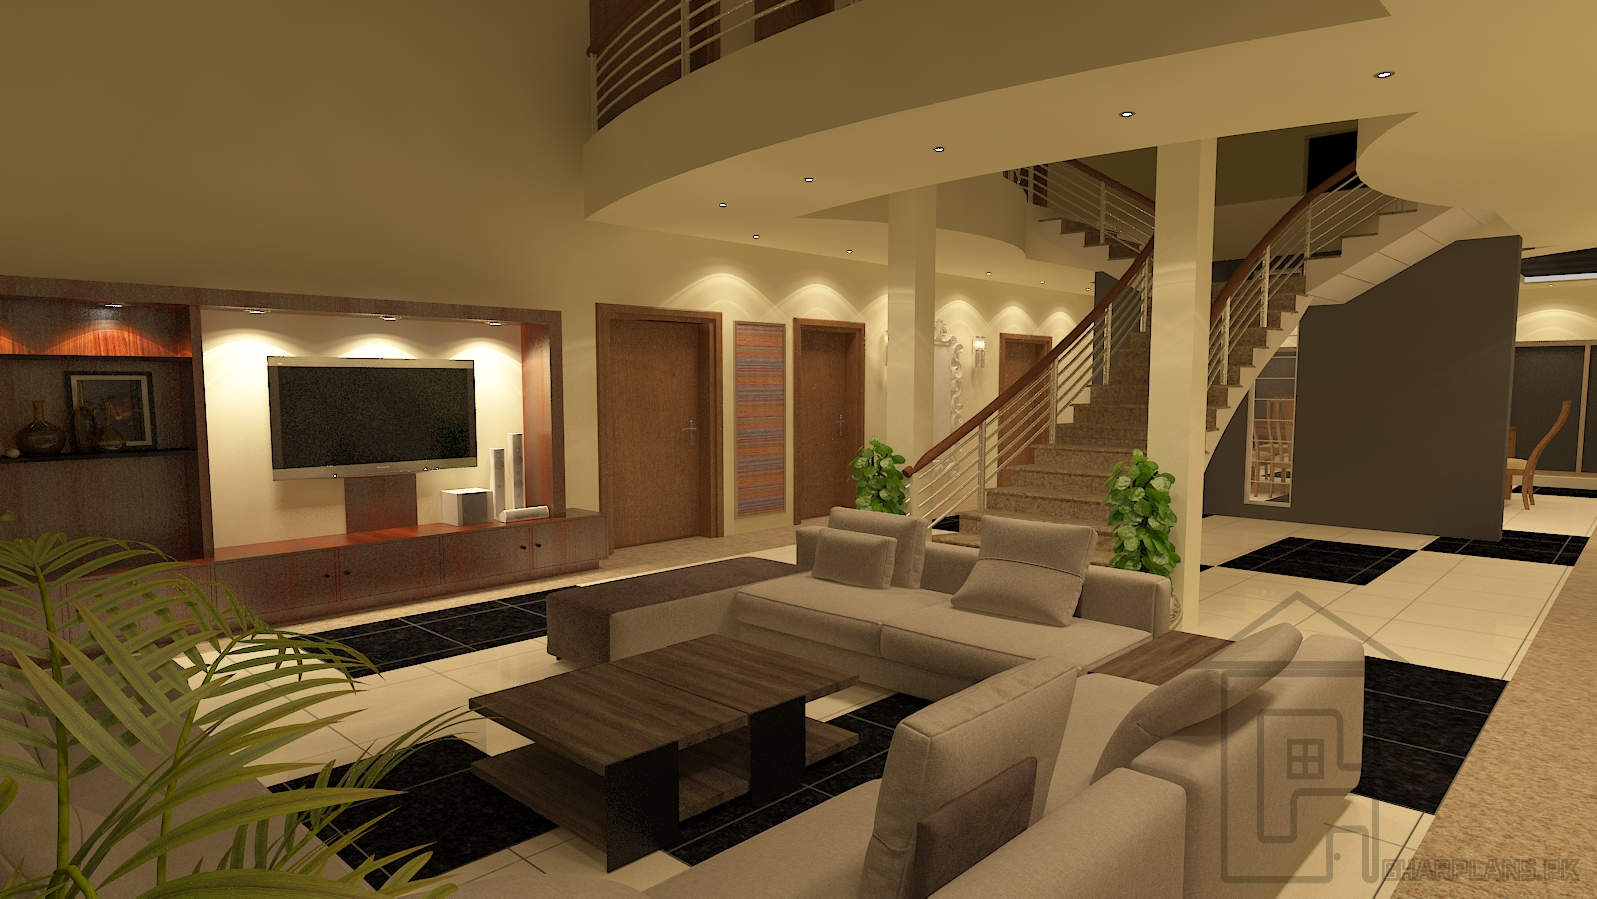 Hallway Idea Of Large House With Sitting Lobby And Dining Linked With Each Other Hallway Is The Most Important Part Of The House And Definitely Worthy Of Deco